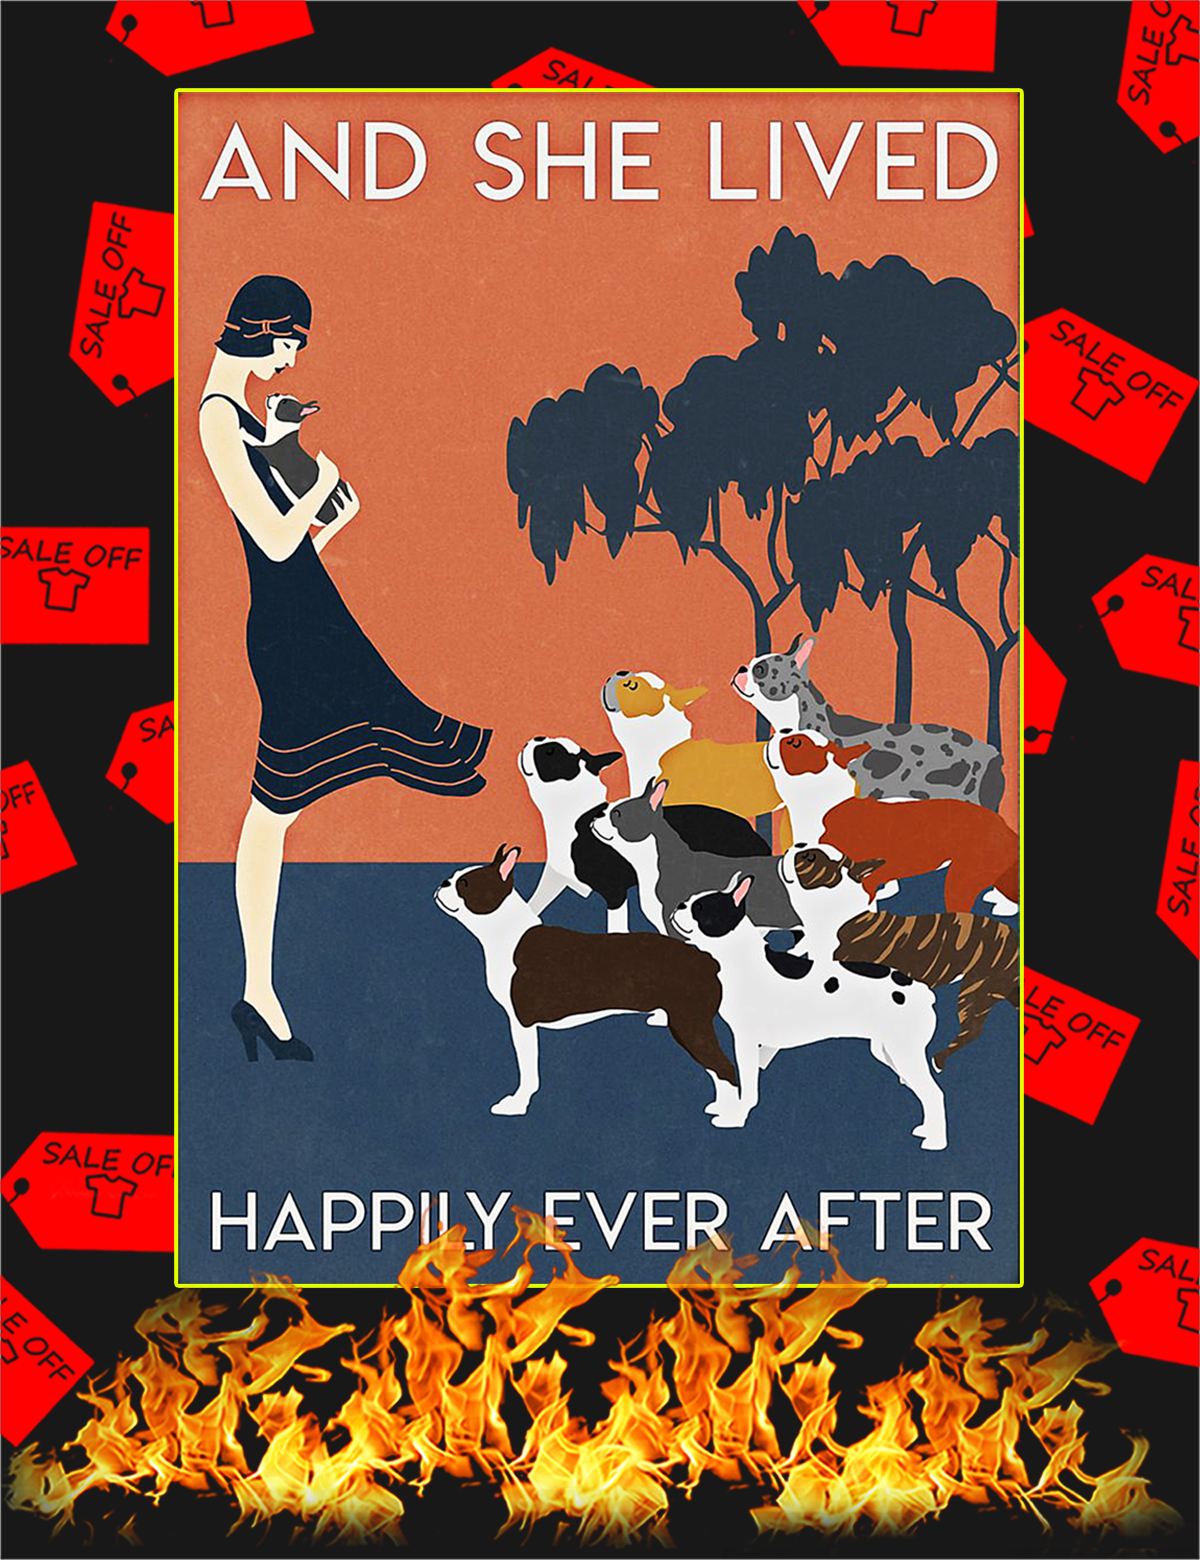 Boston terrier And she lived happily ever after poster - A1